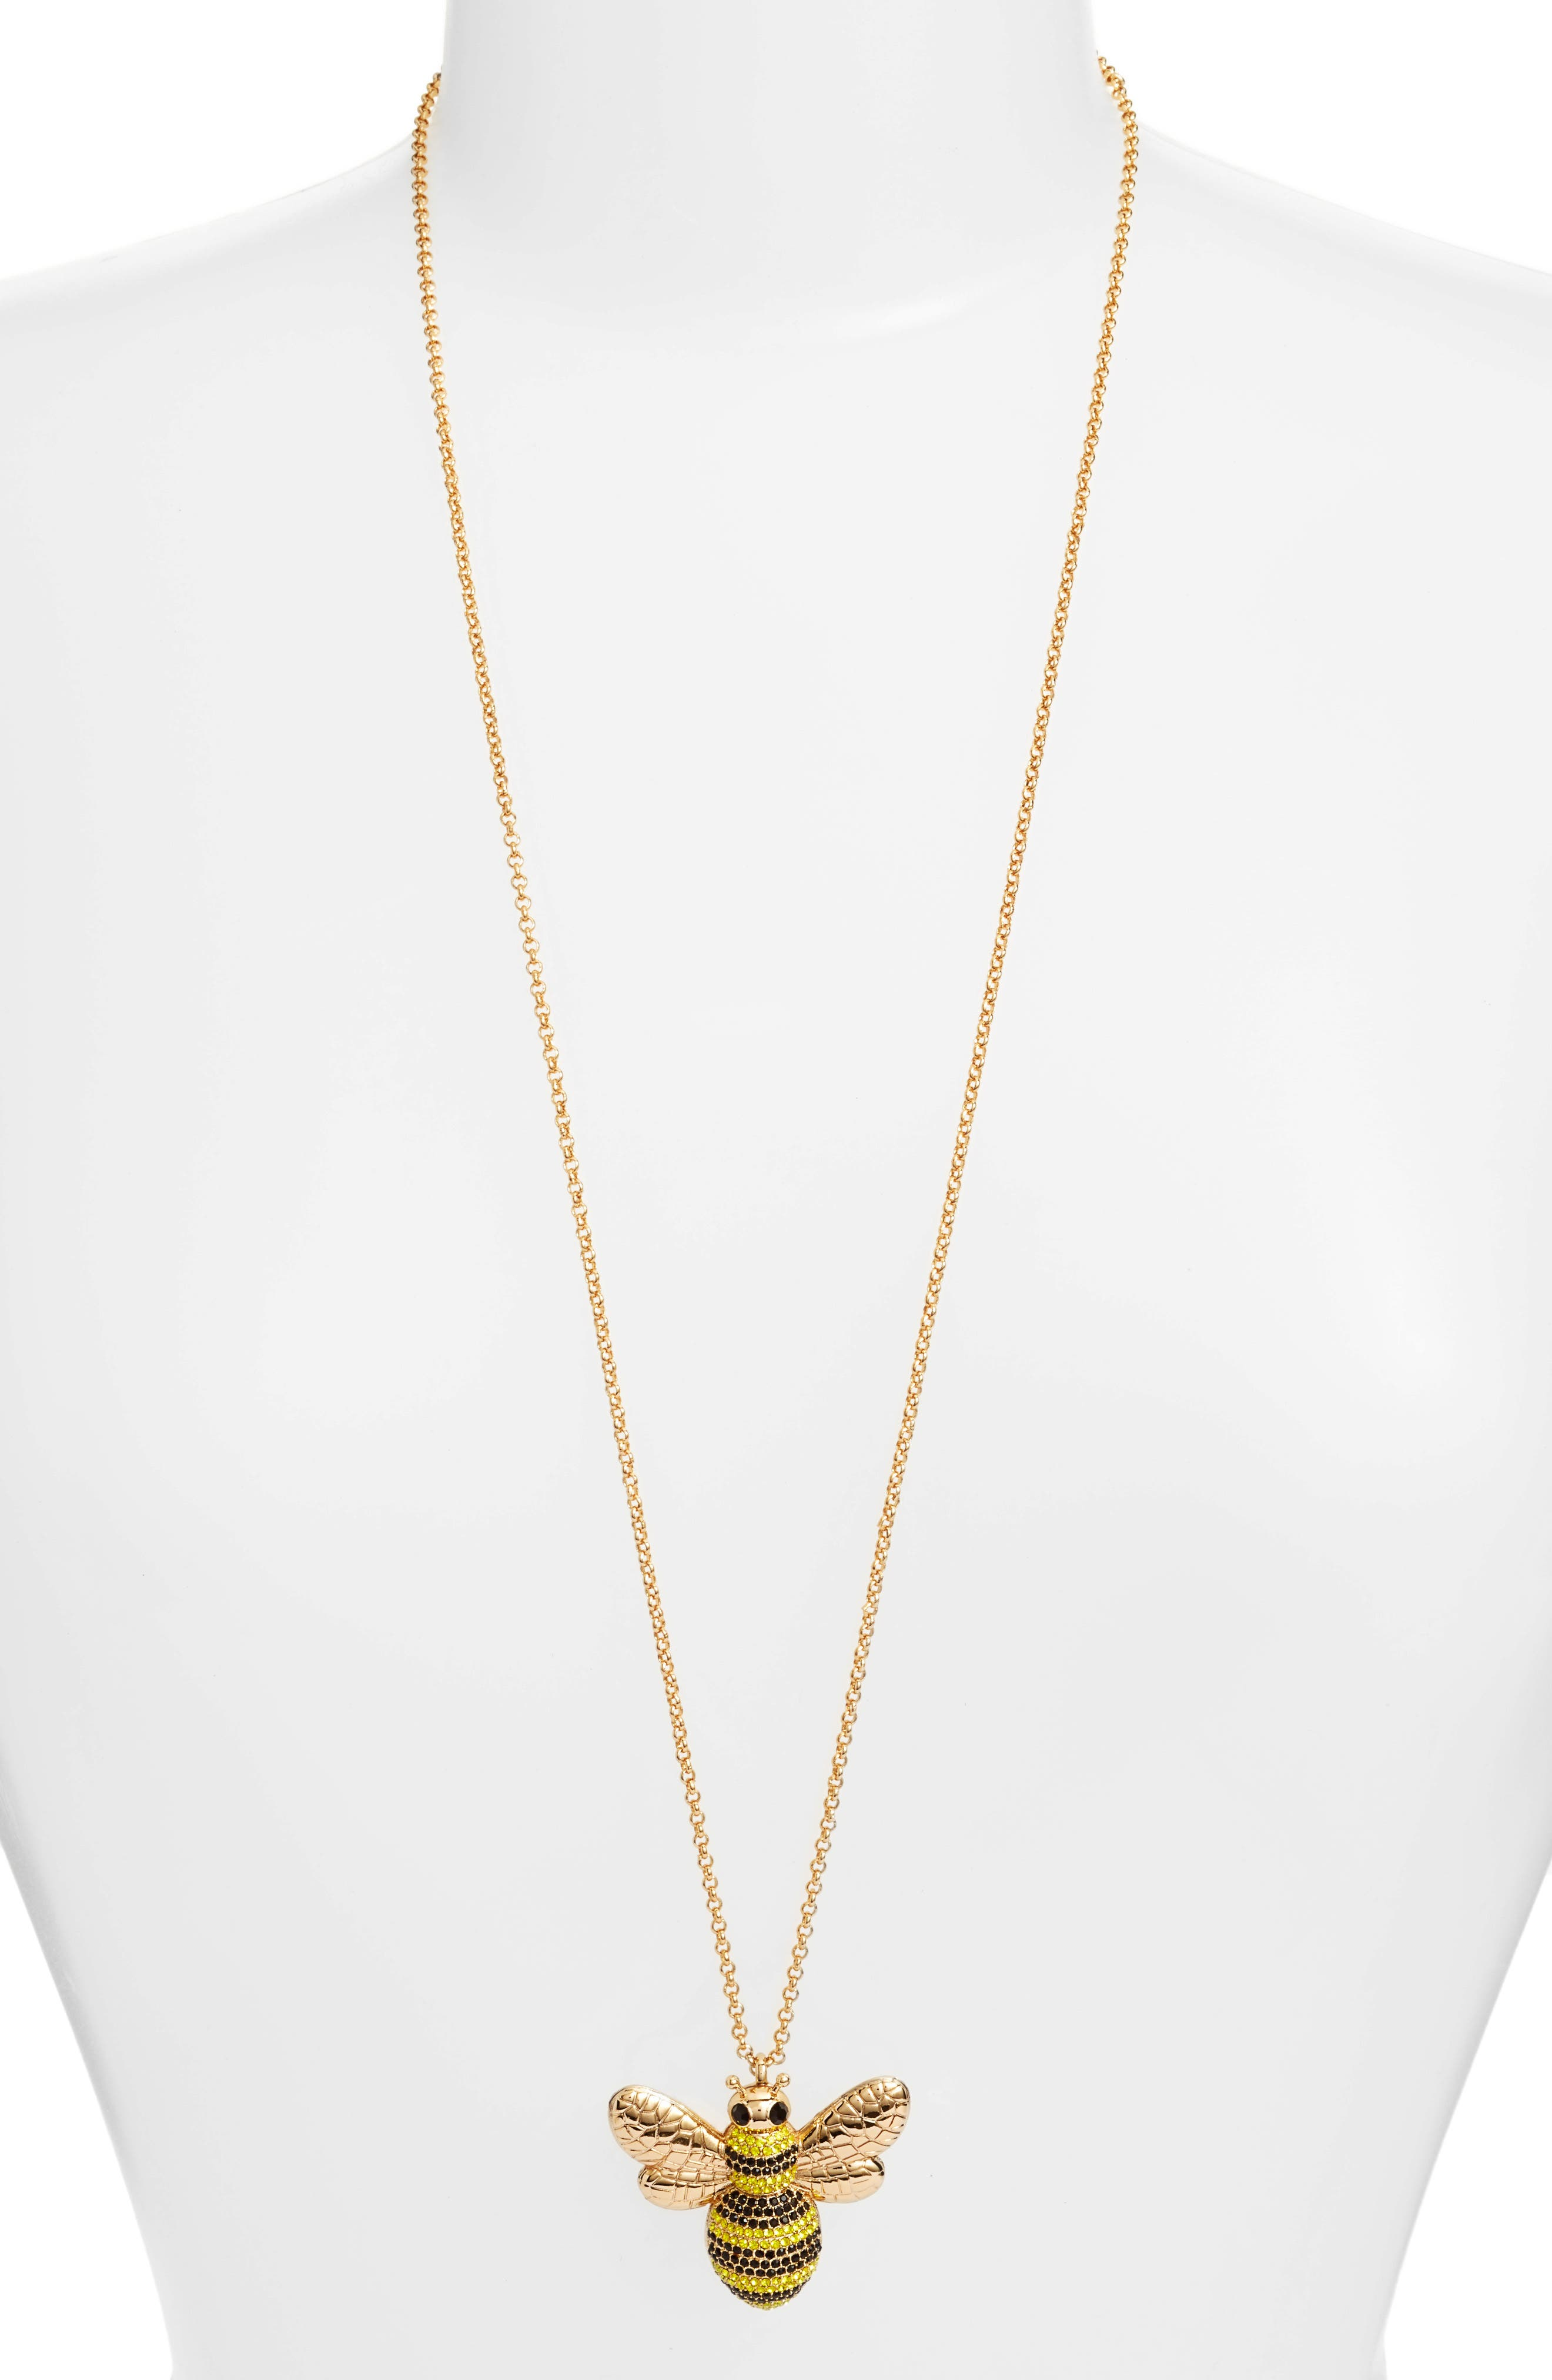 kate spade picnic perfect pave bee pendant necklace,                         Main,                         color, Multi